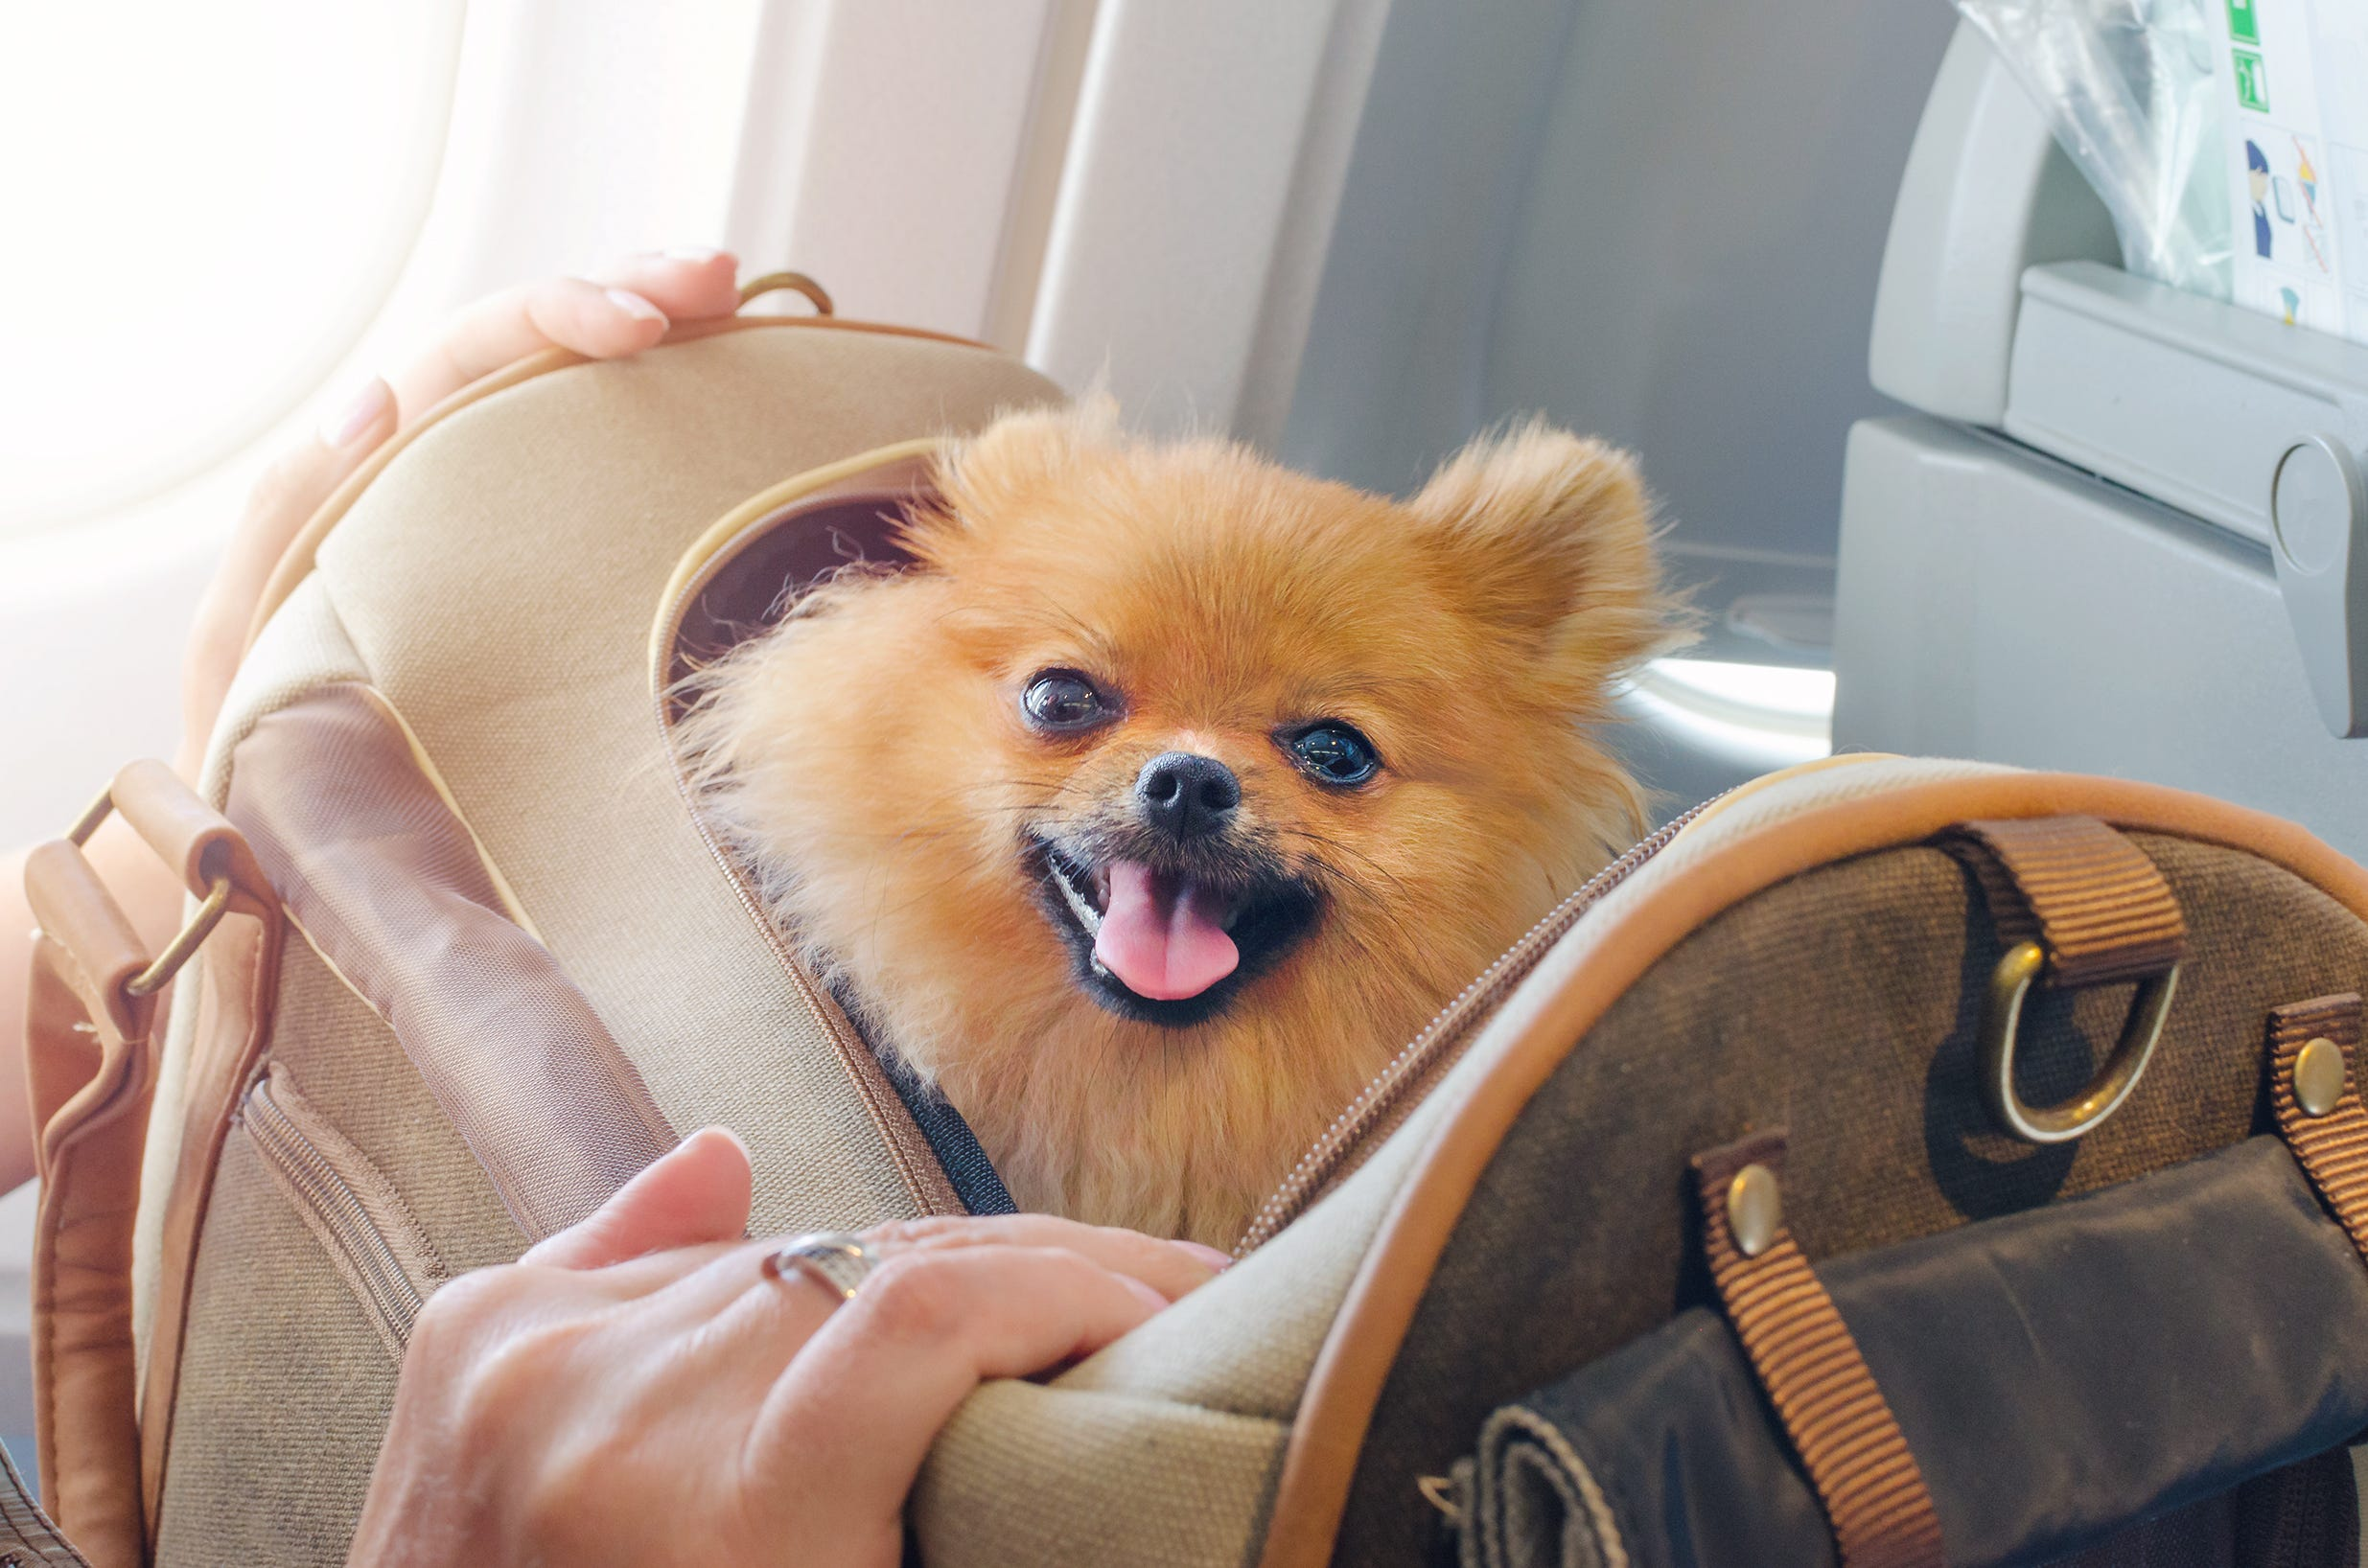 Should You Fly With Your Pet Ask Yourself These Questions First